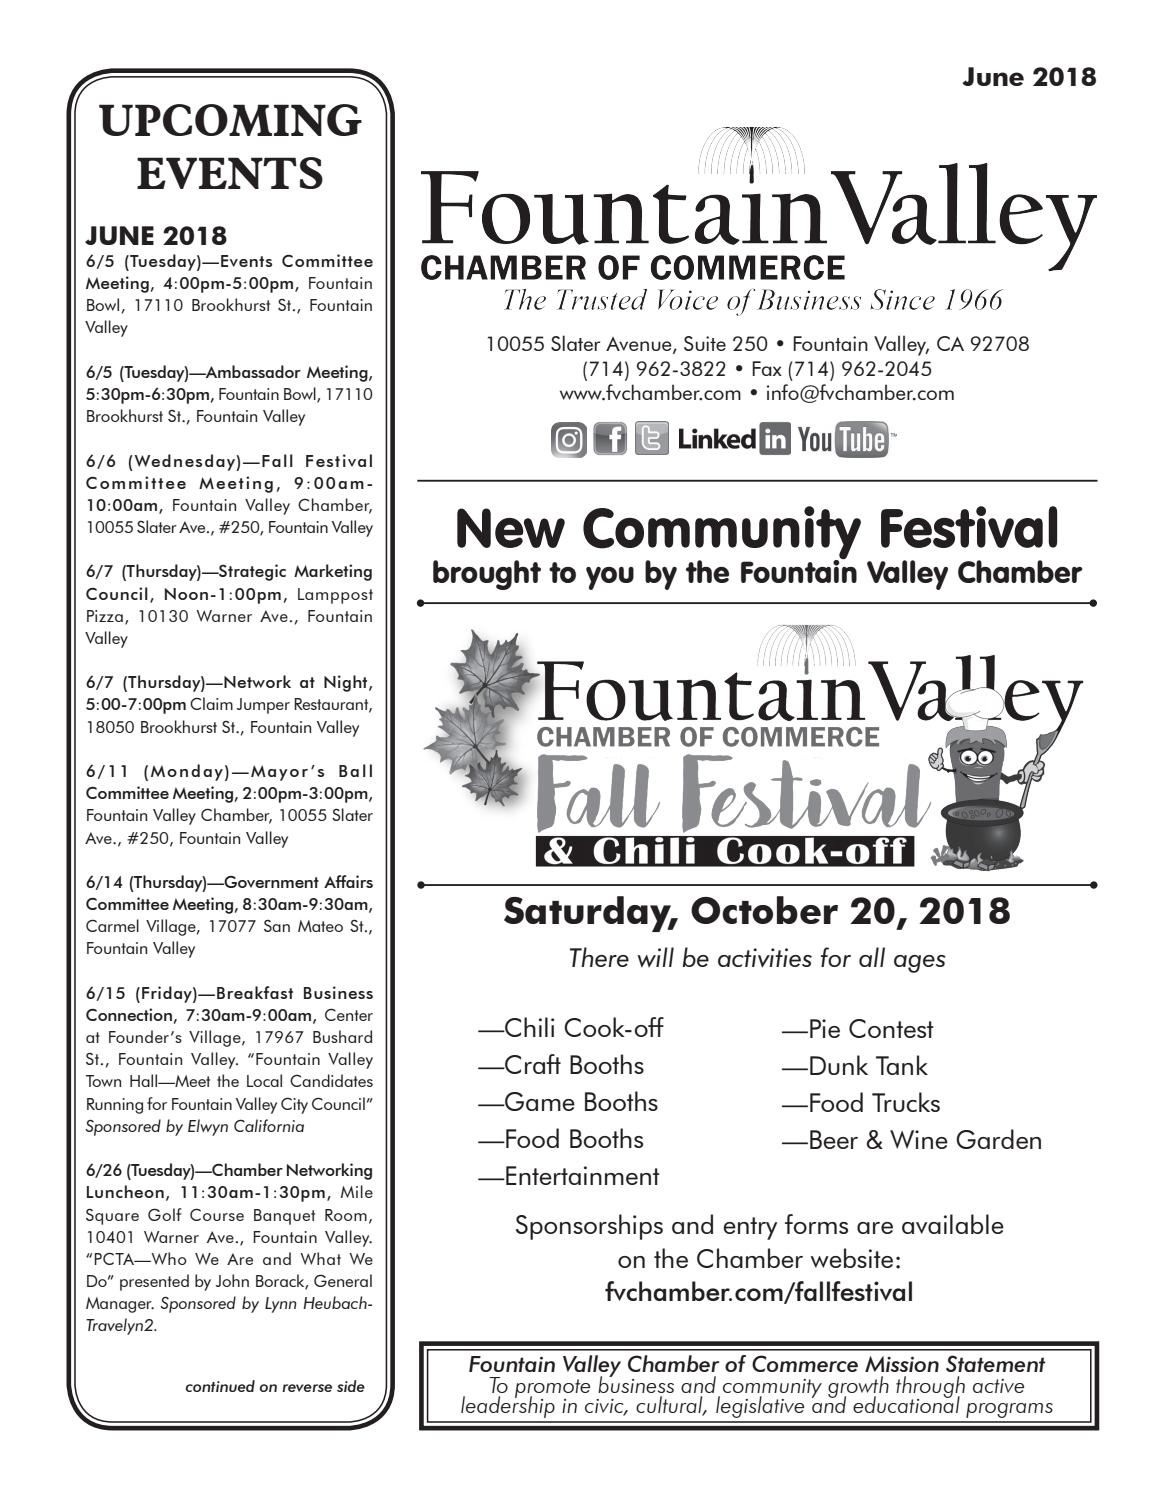 Fvcc June 2018 Flyer By Fountain Valley Chamber Of Commerce Issuu